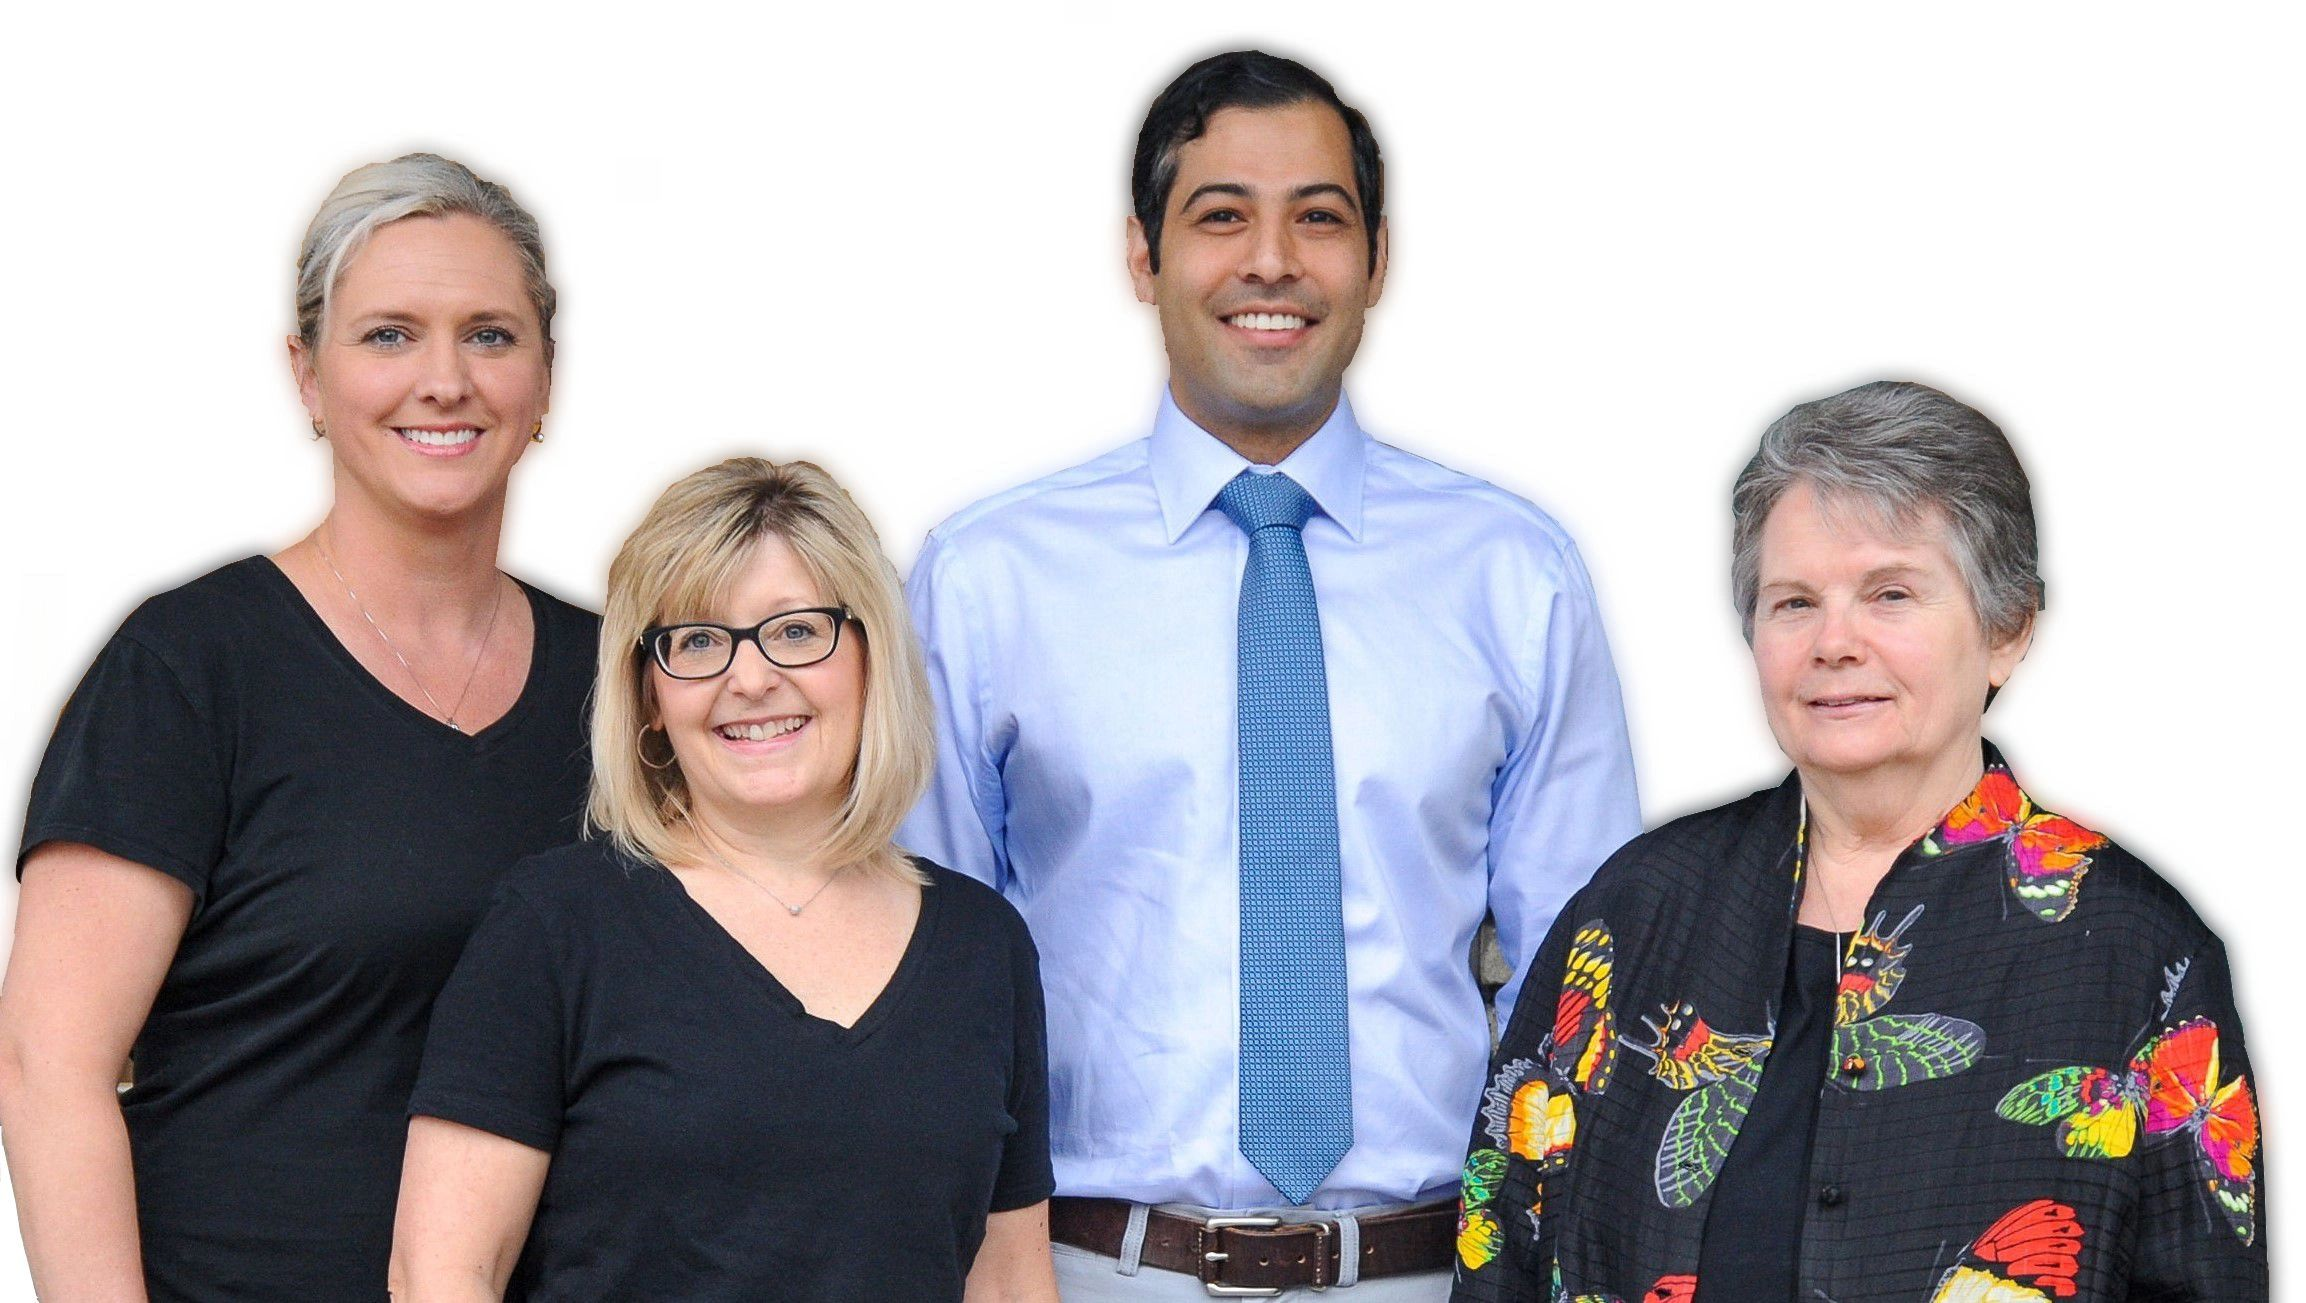 Dr. Kiran Mistry DDS Dentist and Team